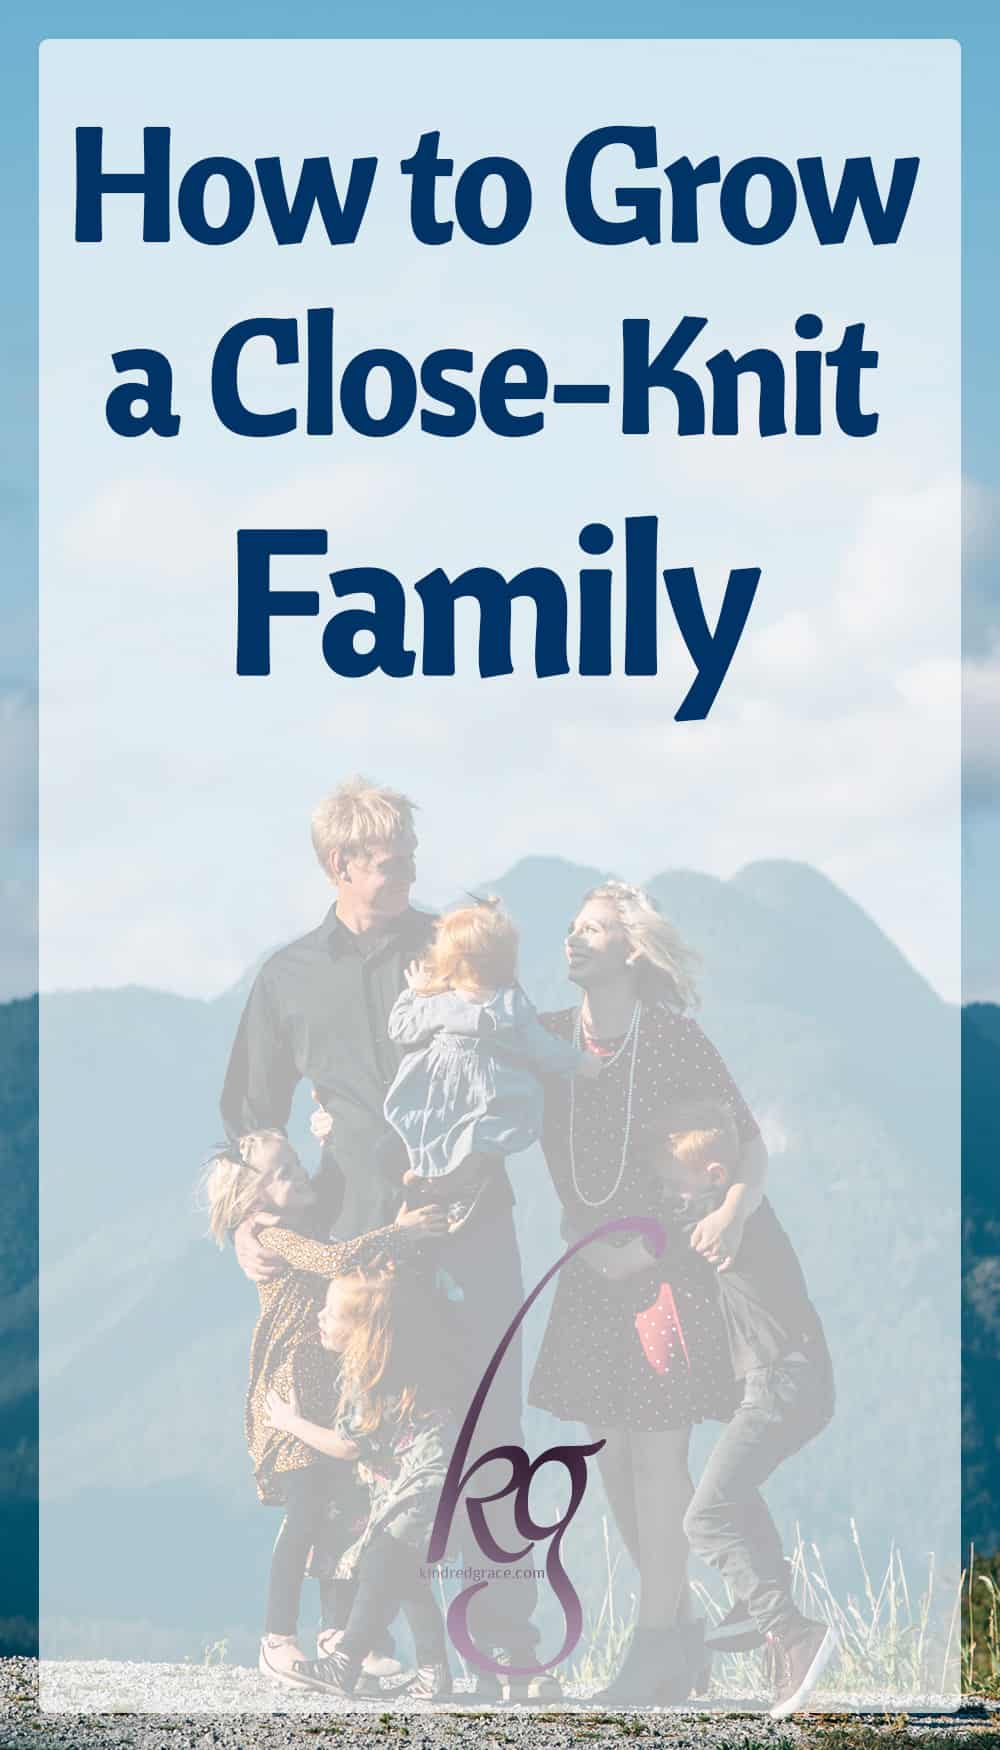 "Do you want to develop a close-knit family? Do you long to have close relationships with your extended family members, improve communication between parents and grandparents, and develop friendships with those who live far away? Most of us want these things, but often we don't know how to ""get there."" via @KindredGrace"